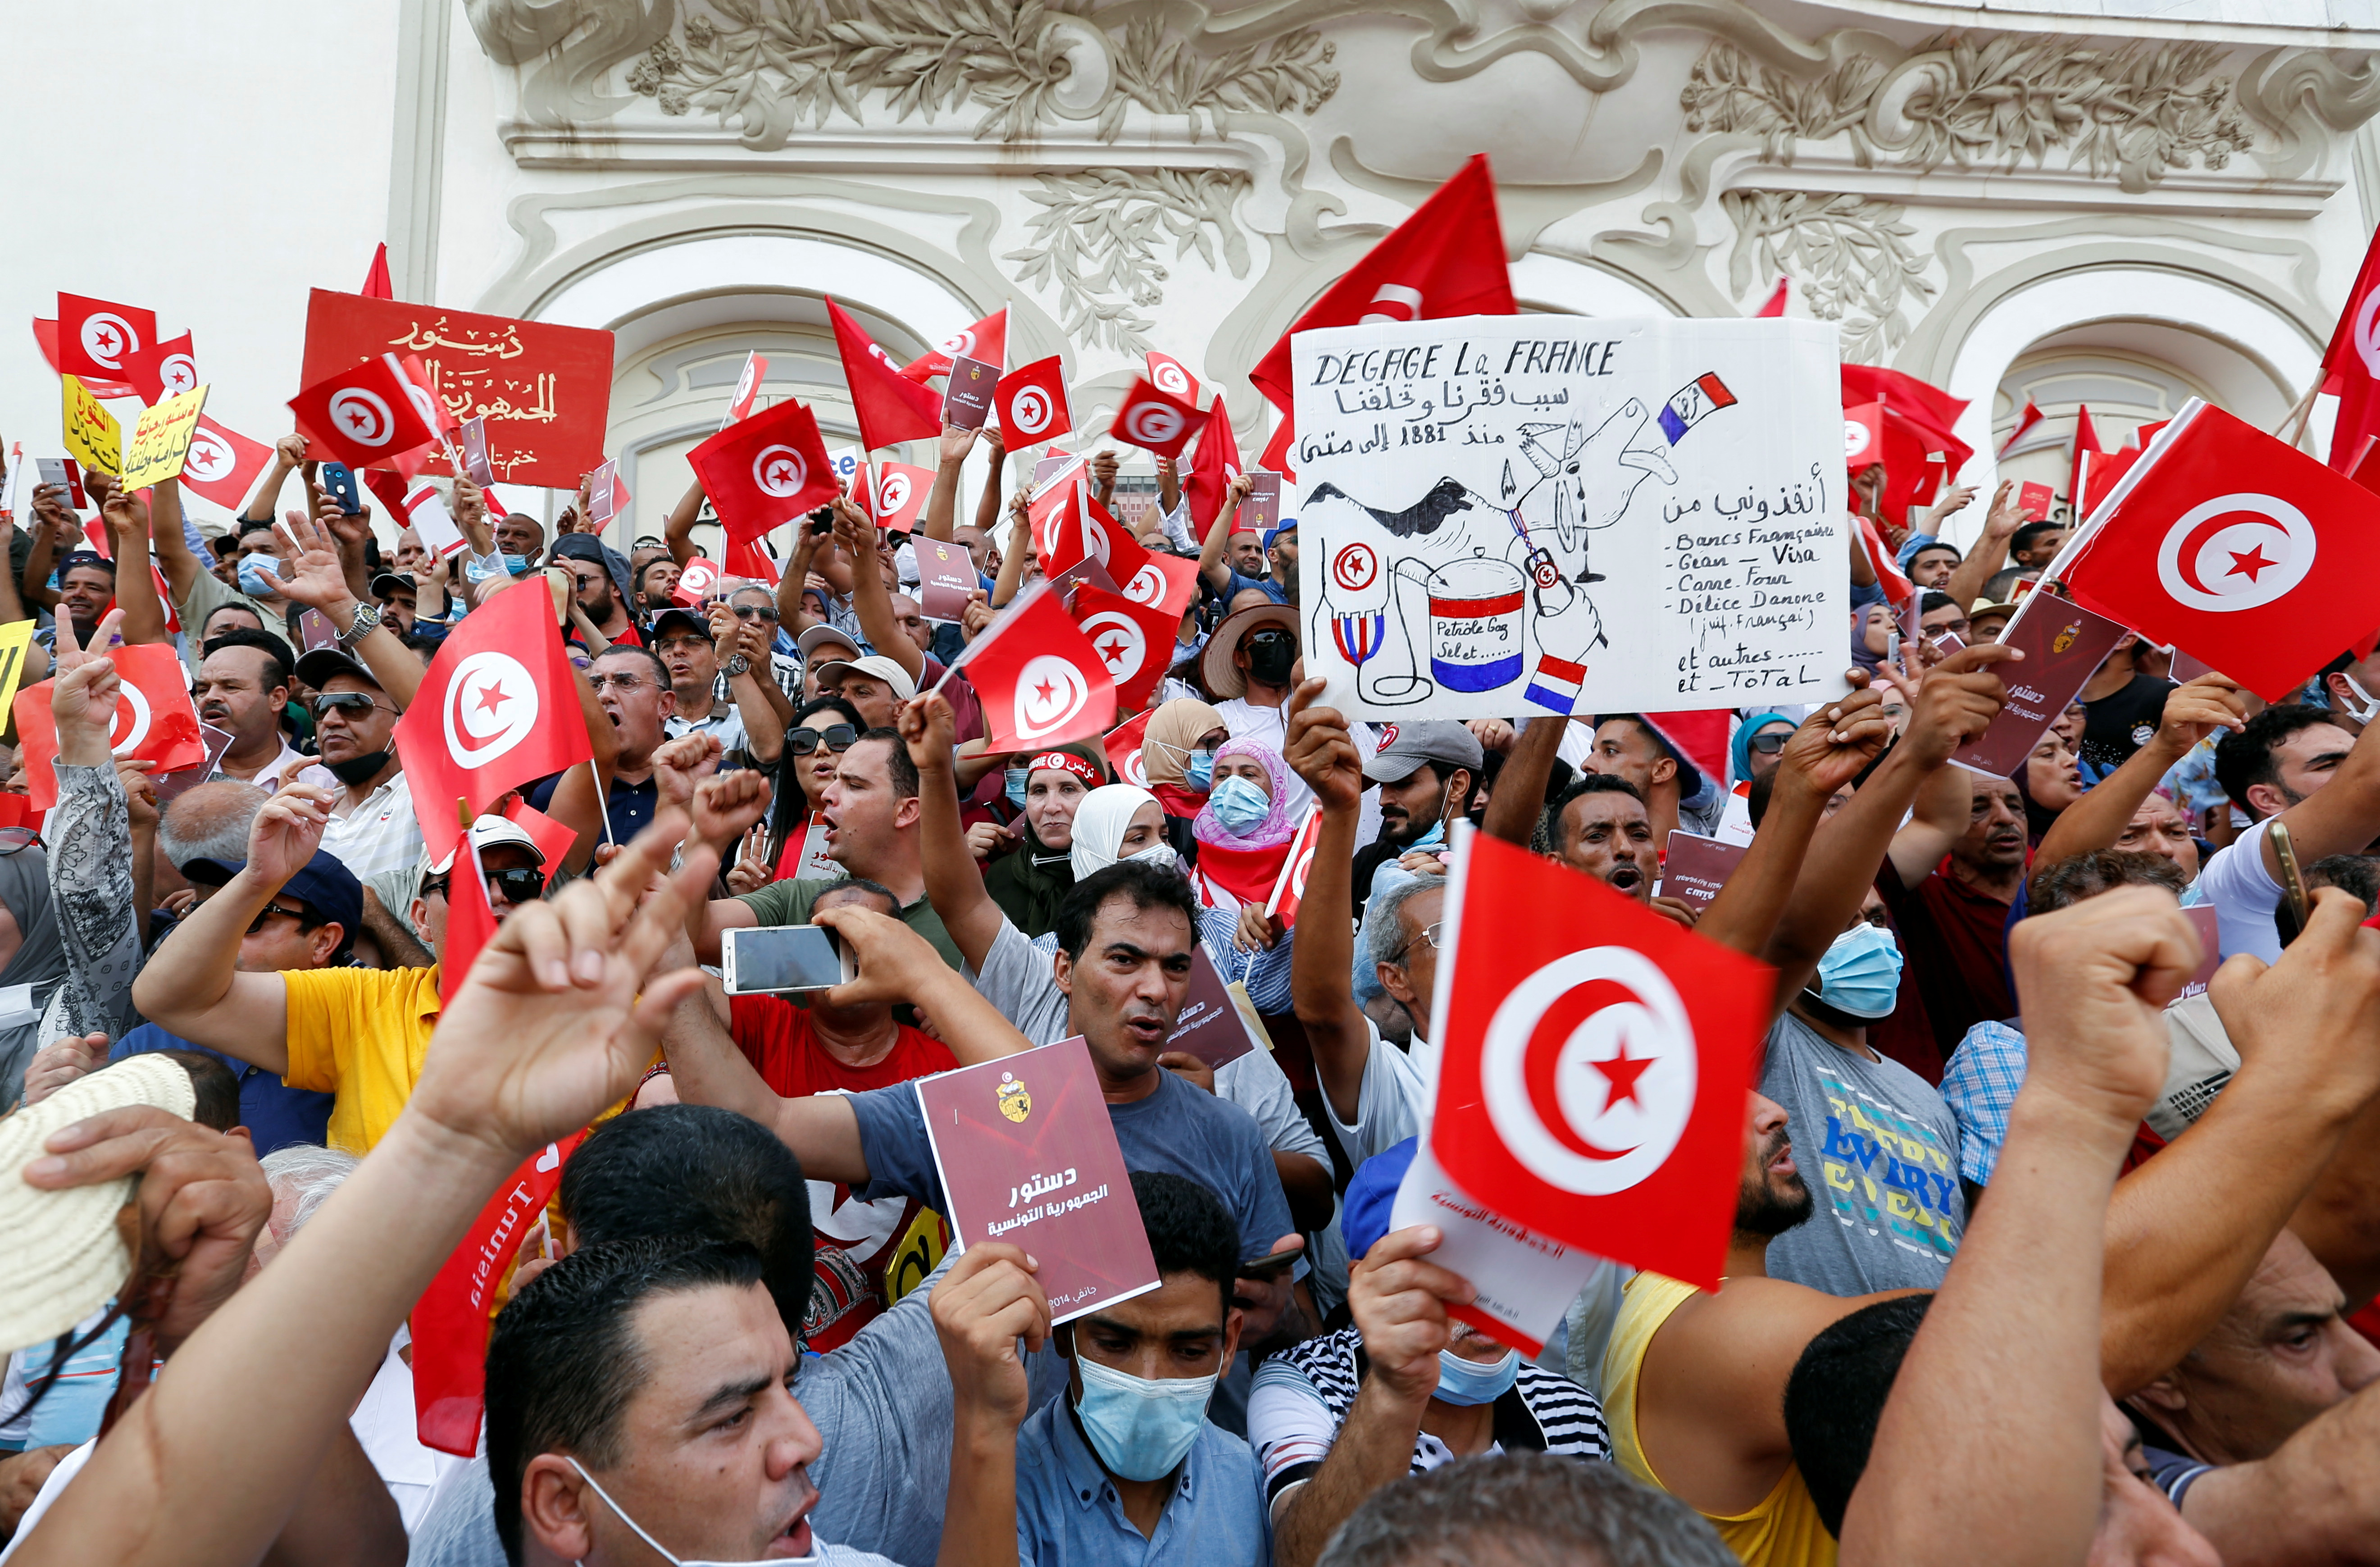 Demonstrators carry flags and banners during a protest against the Tunisian President Kais Saied's seizure of governing powers.  REUTERS/Zoubeir Souissi